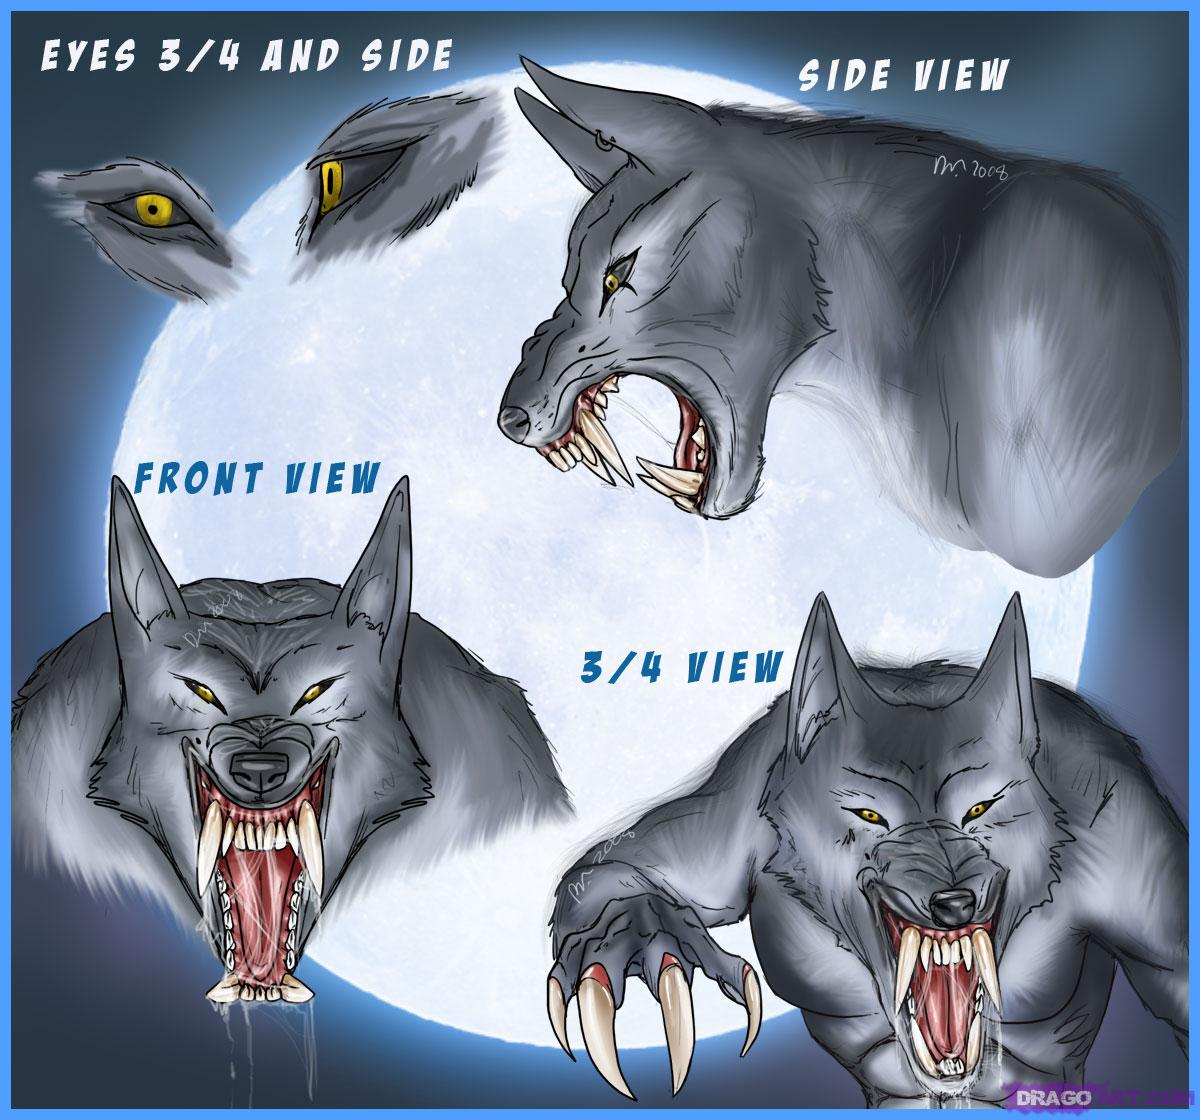 Drawn wolfman eye To Werewolves Step face How